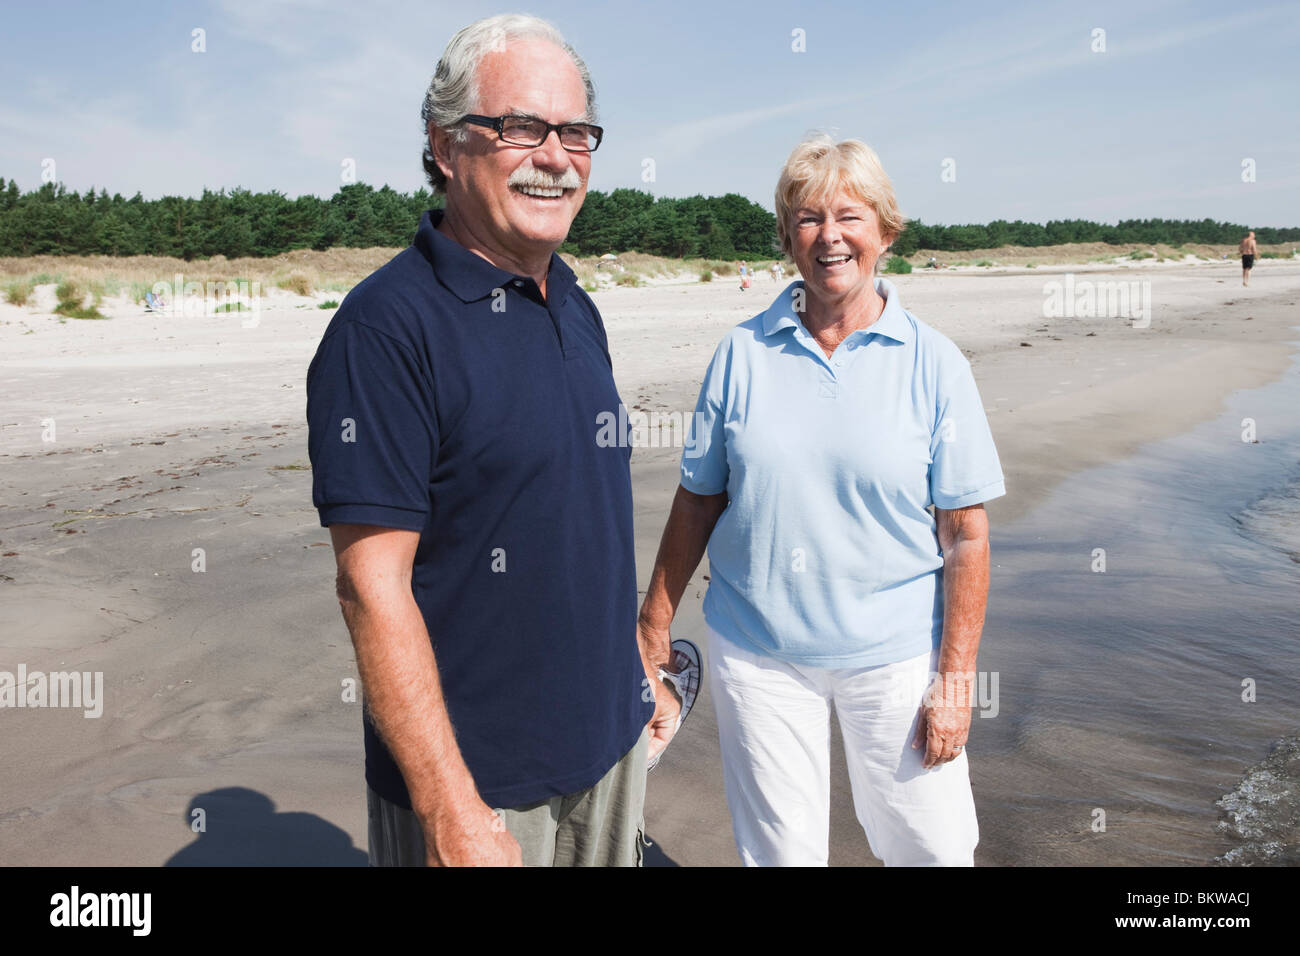 Couple standing in the water's edge - Stock Image